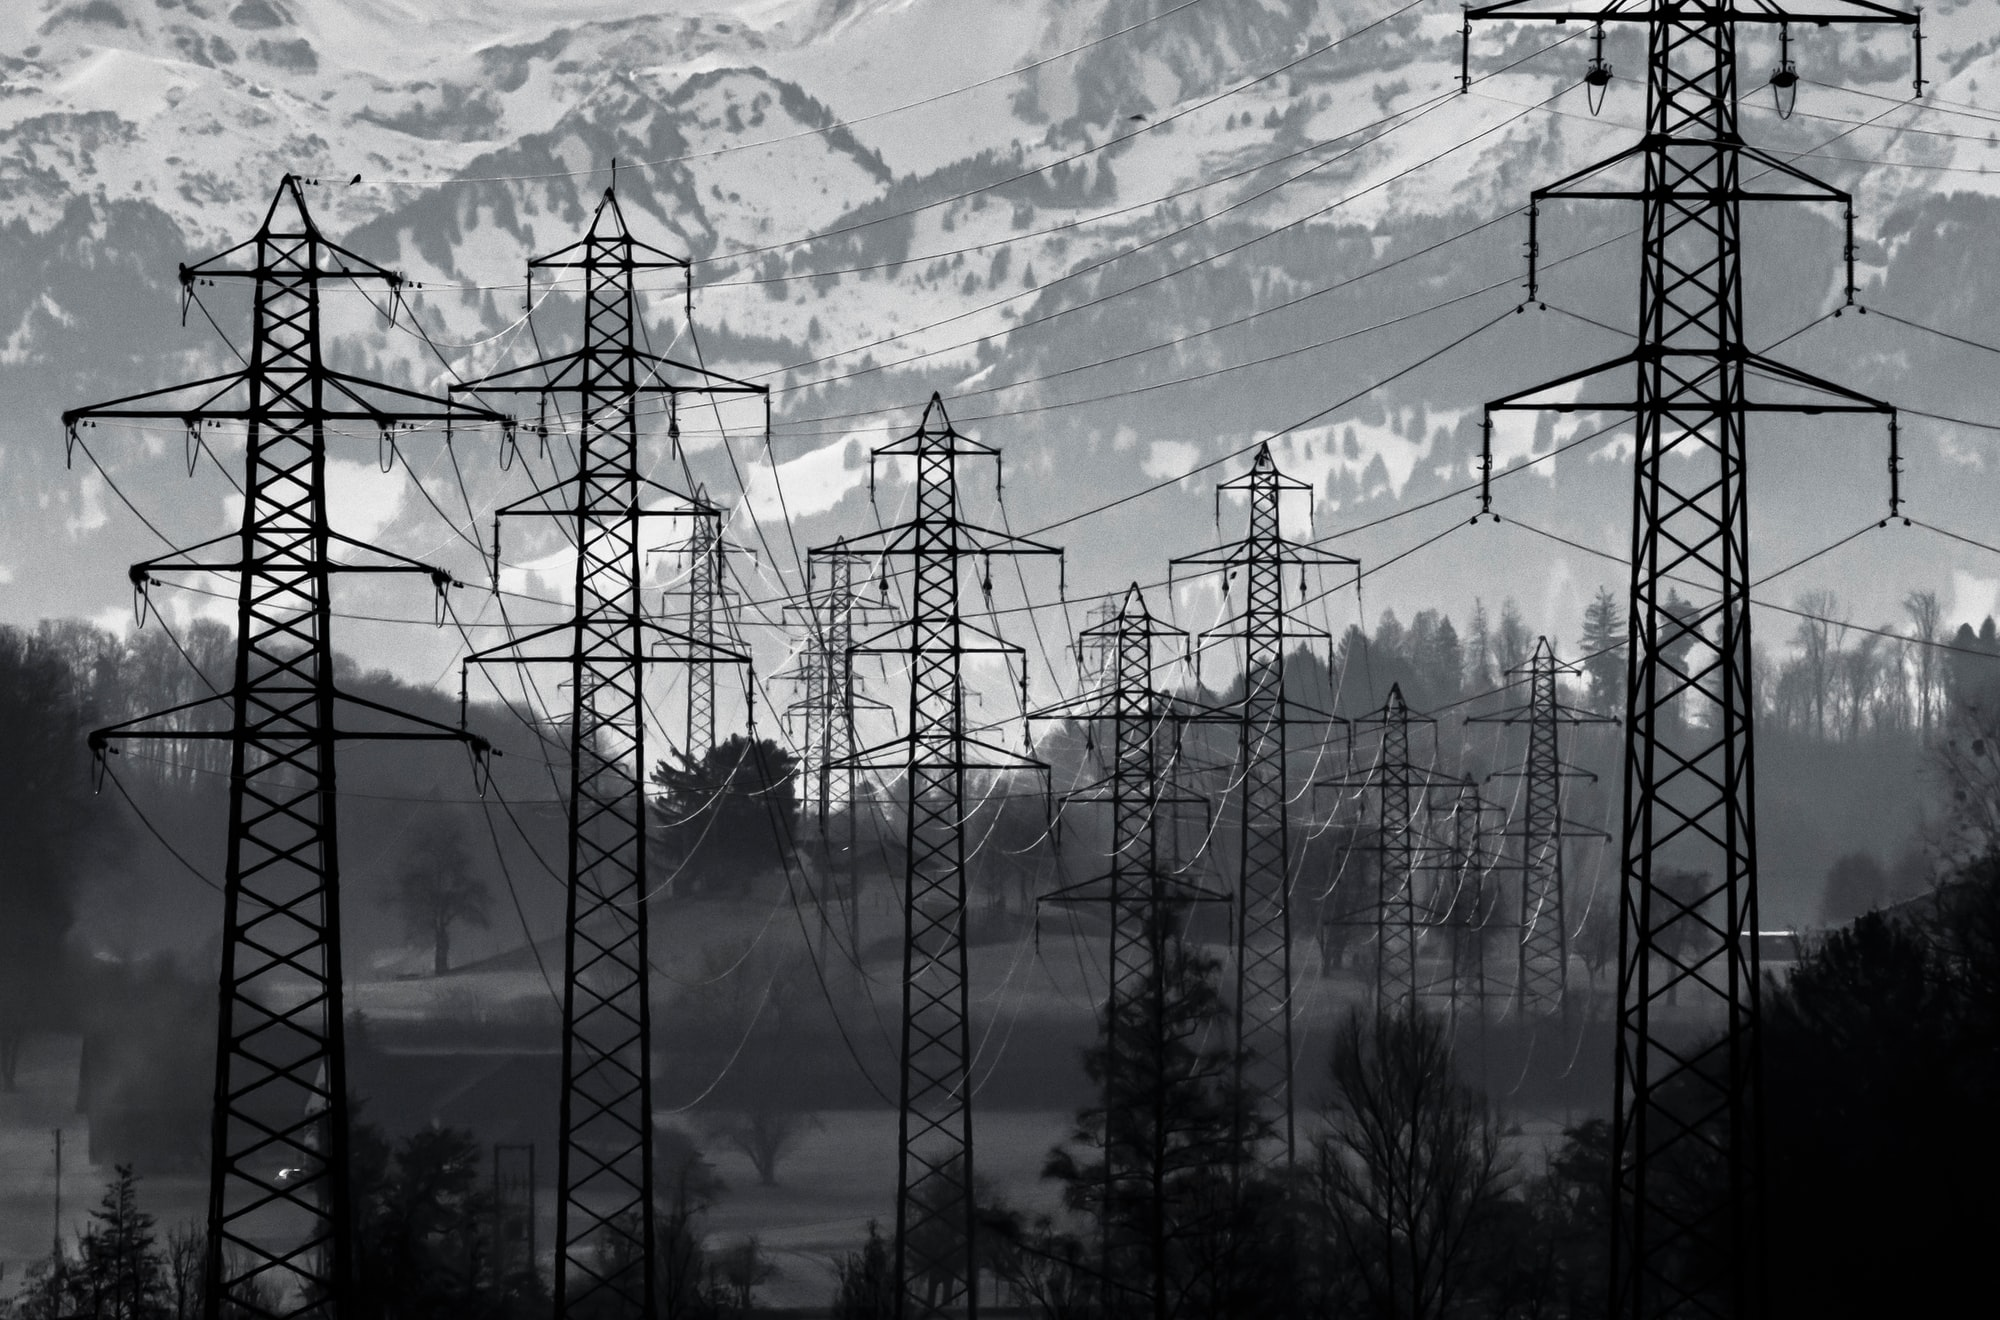 Severe storms are increasingly leaving us without power. Microgrids can help